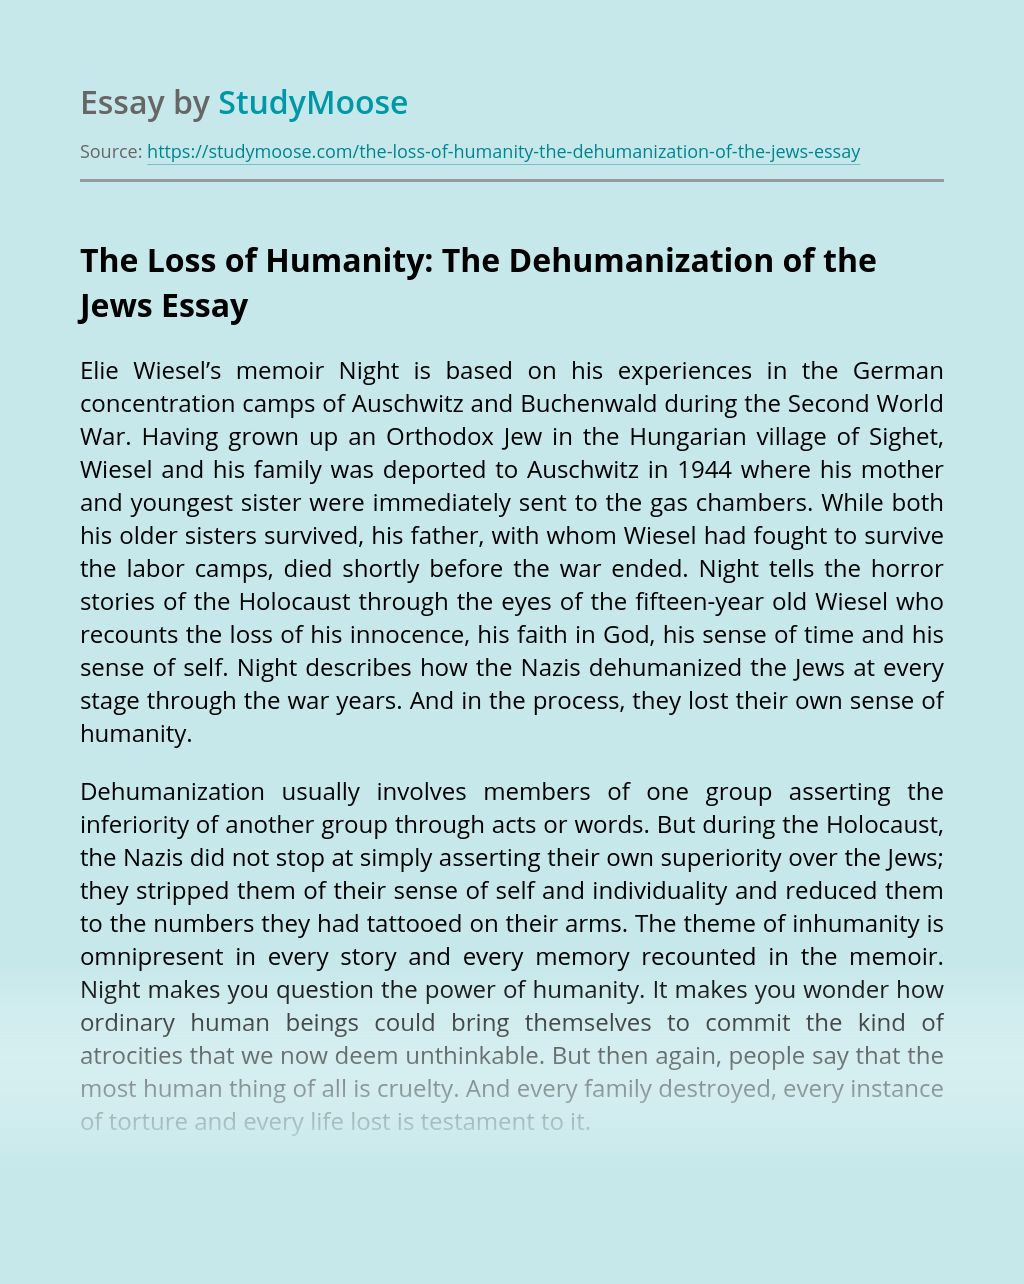 The Loss of Humanity: The Dehumanization of the Jews